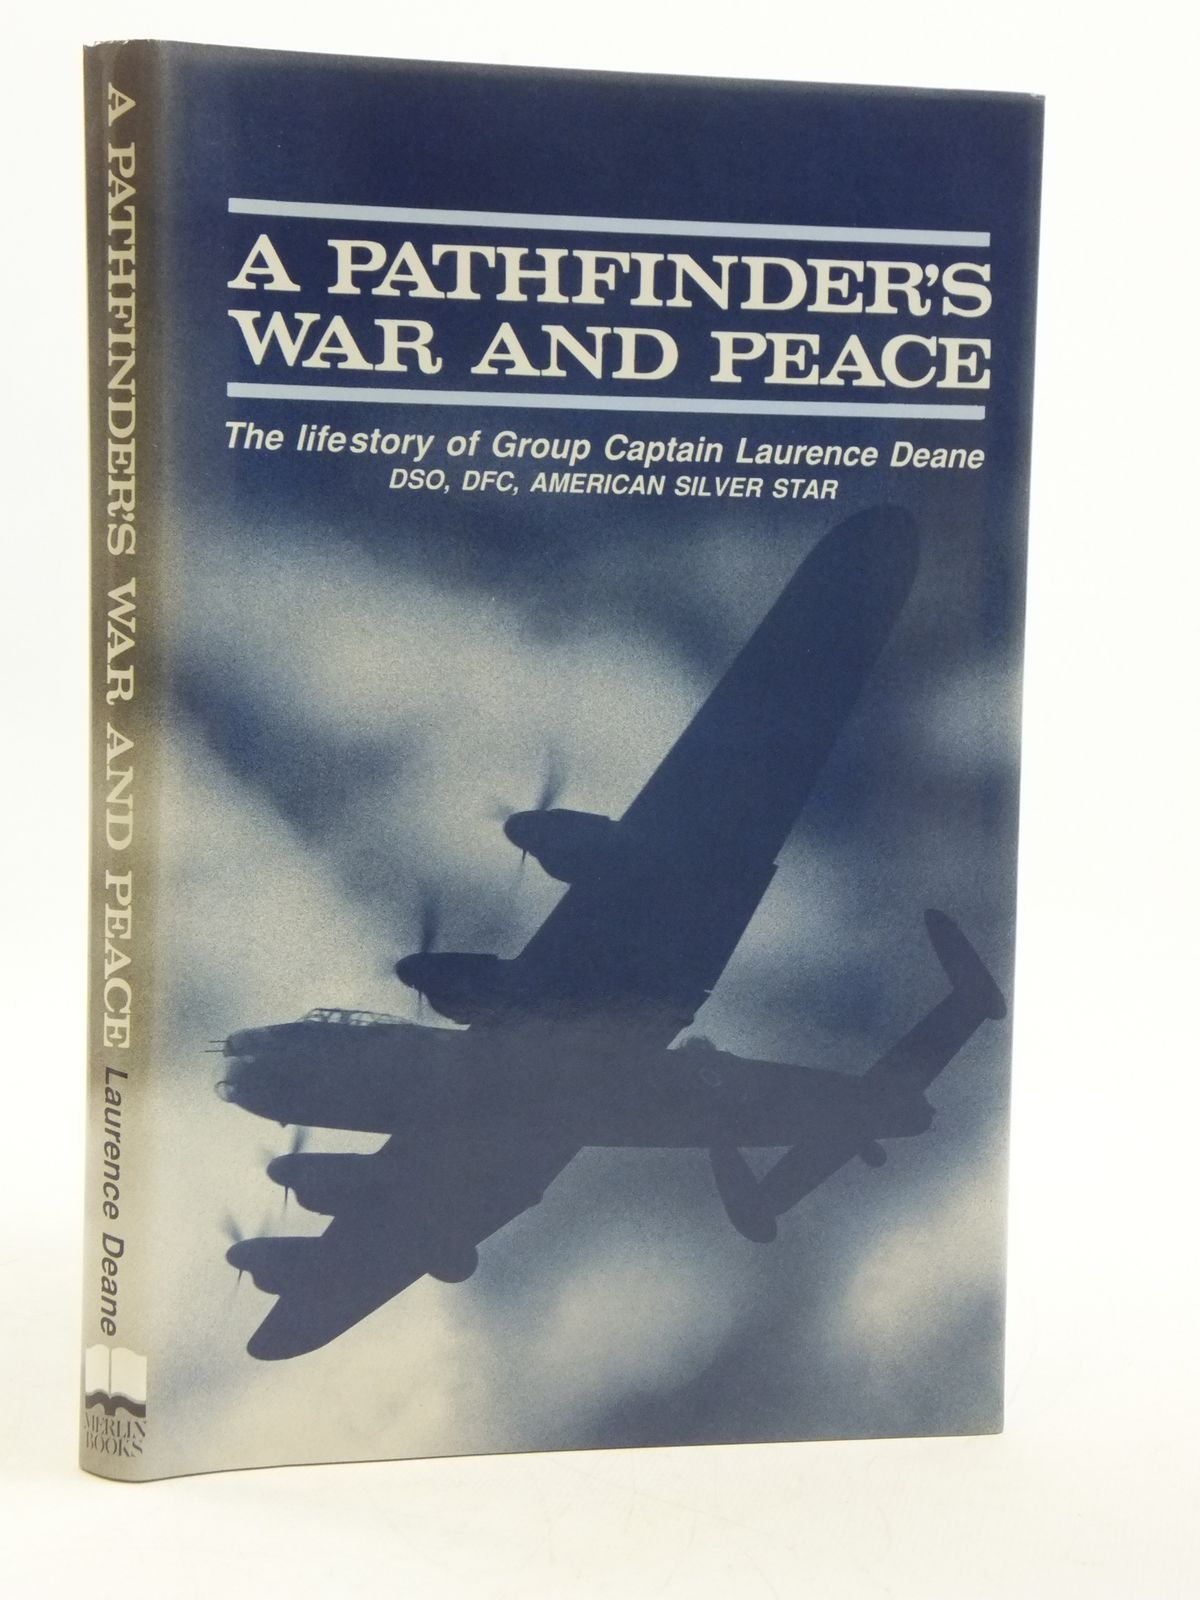 Photo of A PATHFINDER'S WAR AND PEACE written by Deane, Laurence published by Merlin Books Ltd. (STOCK CODE: 1604993)  for sale by Stella & Rose's Books